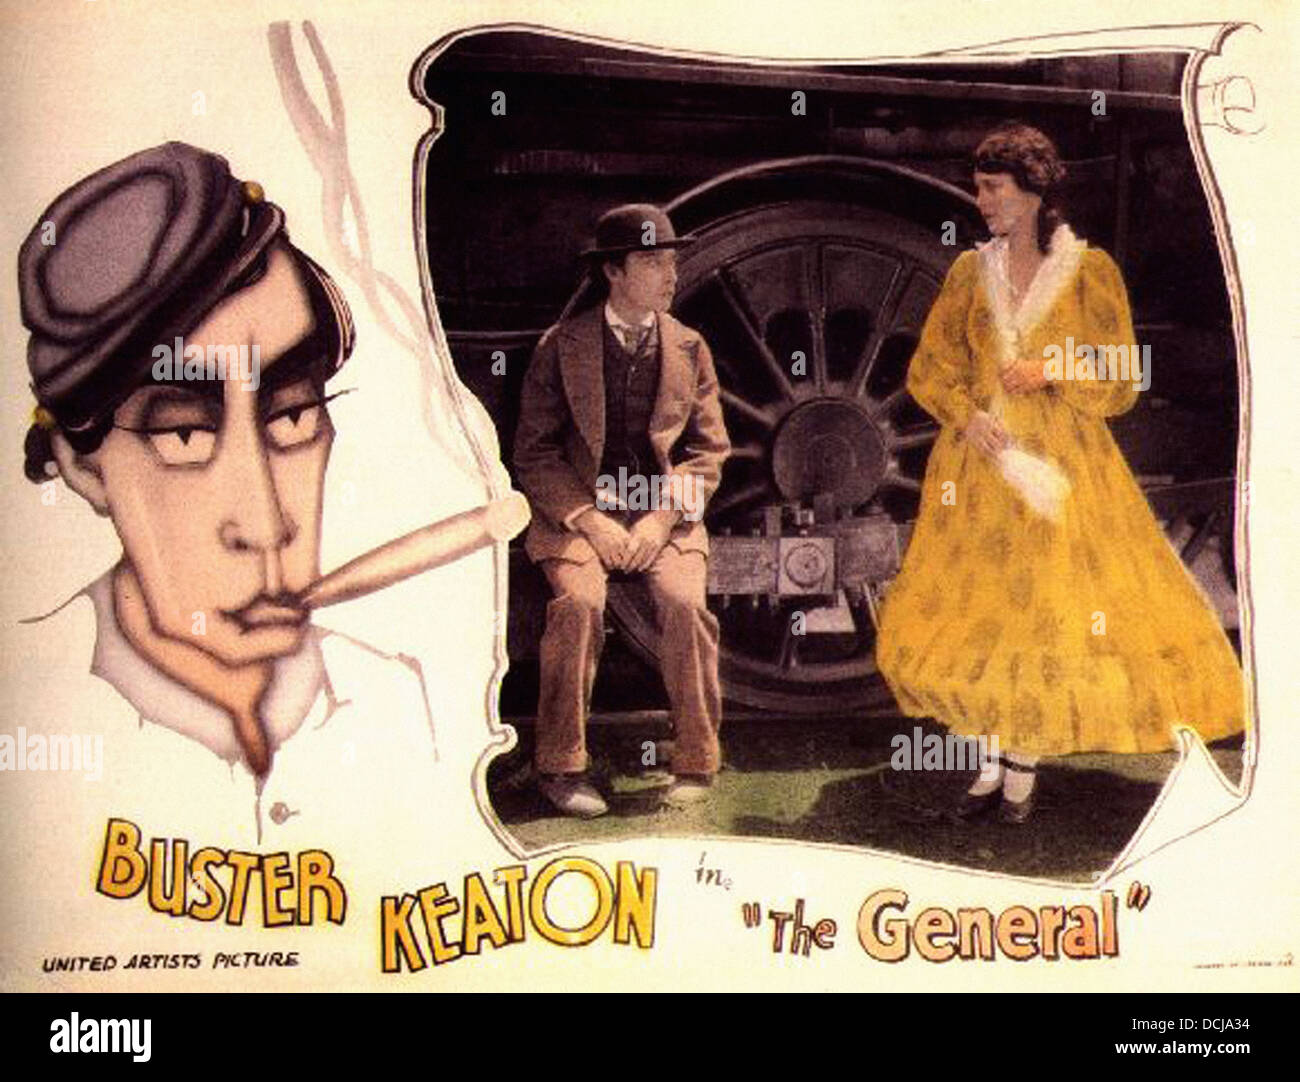 THE GENERAL - Buster Keaton Productions 1927 - Movie Poster - Stock Image